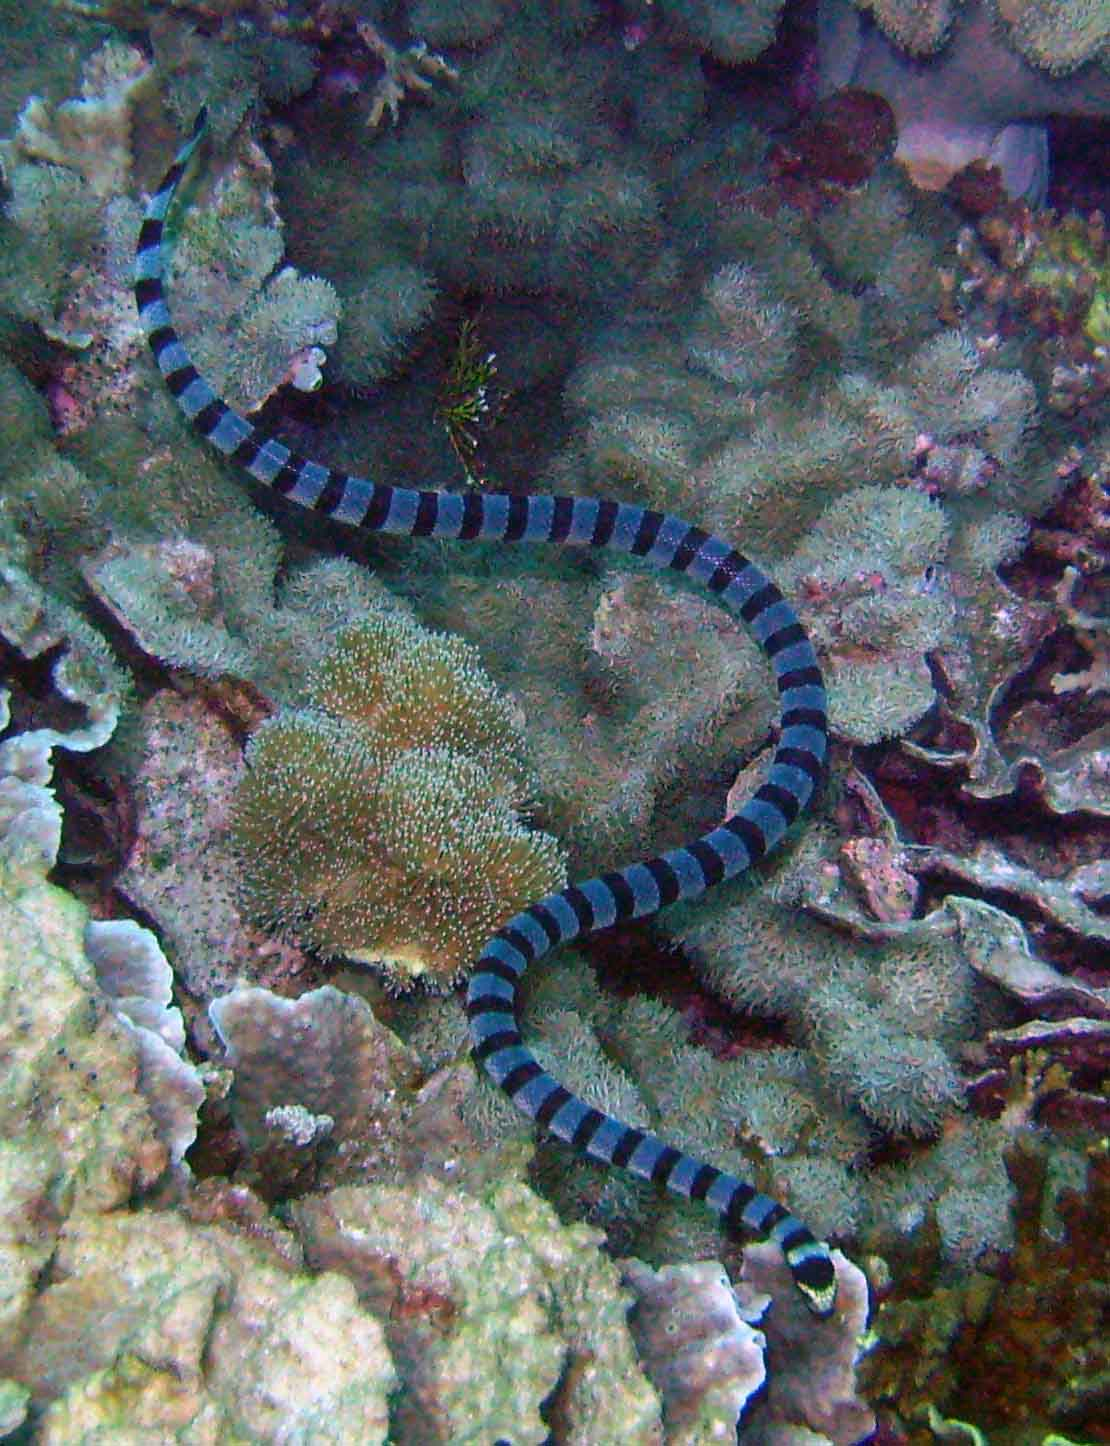 10 Fabulous Facts About Sea Snakes